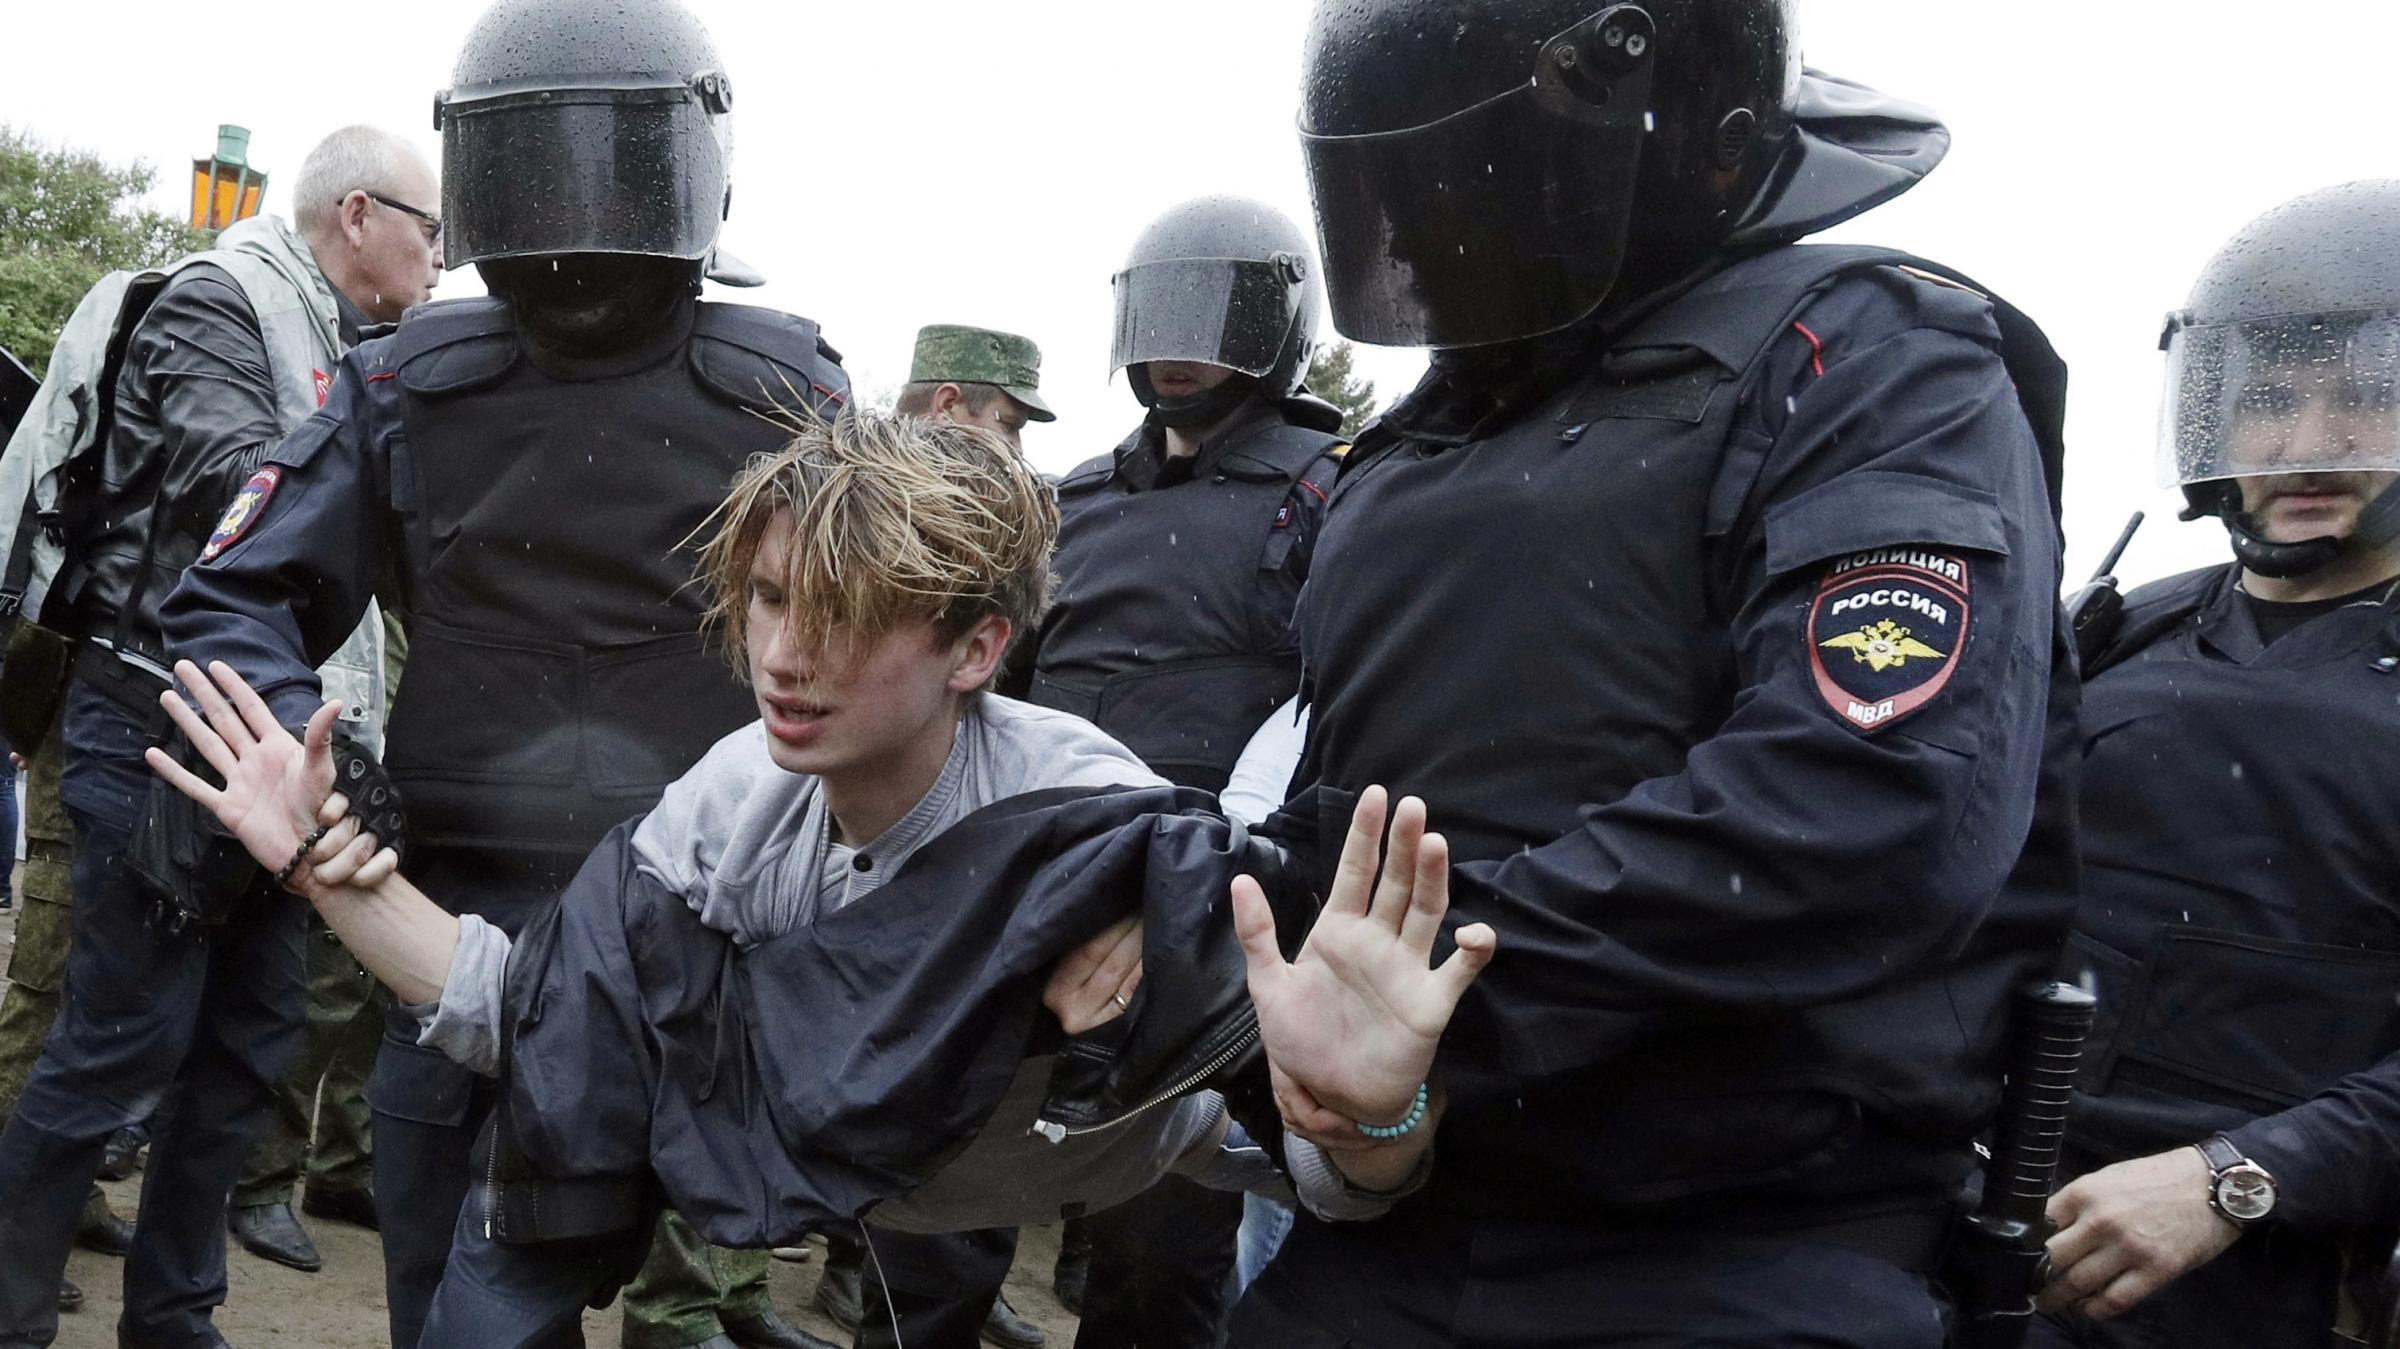 Russian Federation : mass protest arrests show authorities' 'stranglehold' on free expression